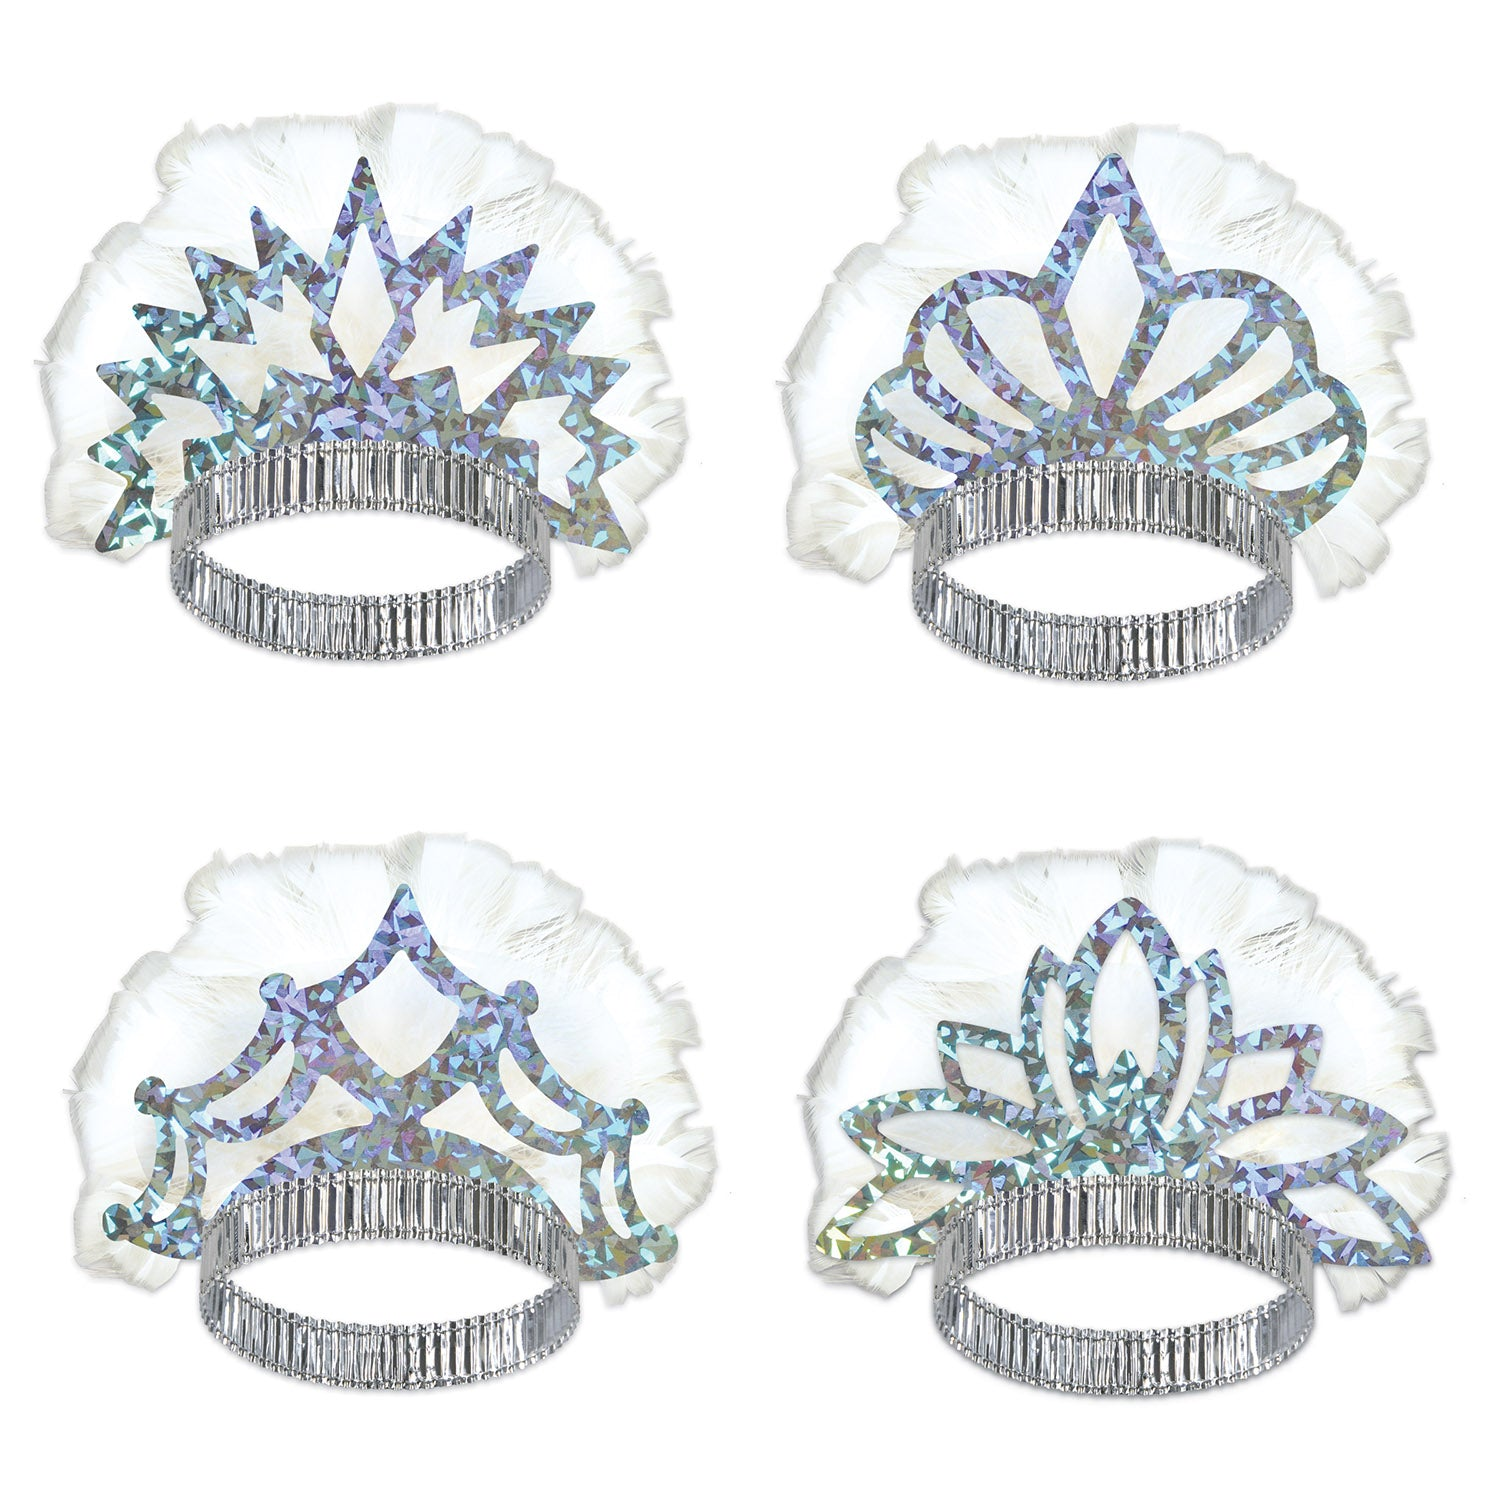 Prismatic Tiaras by Beistle - General Occasion Decorations